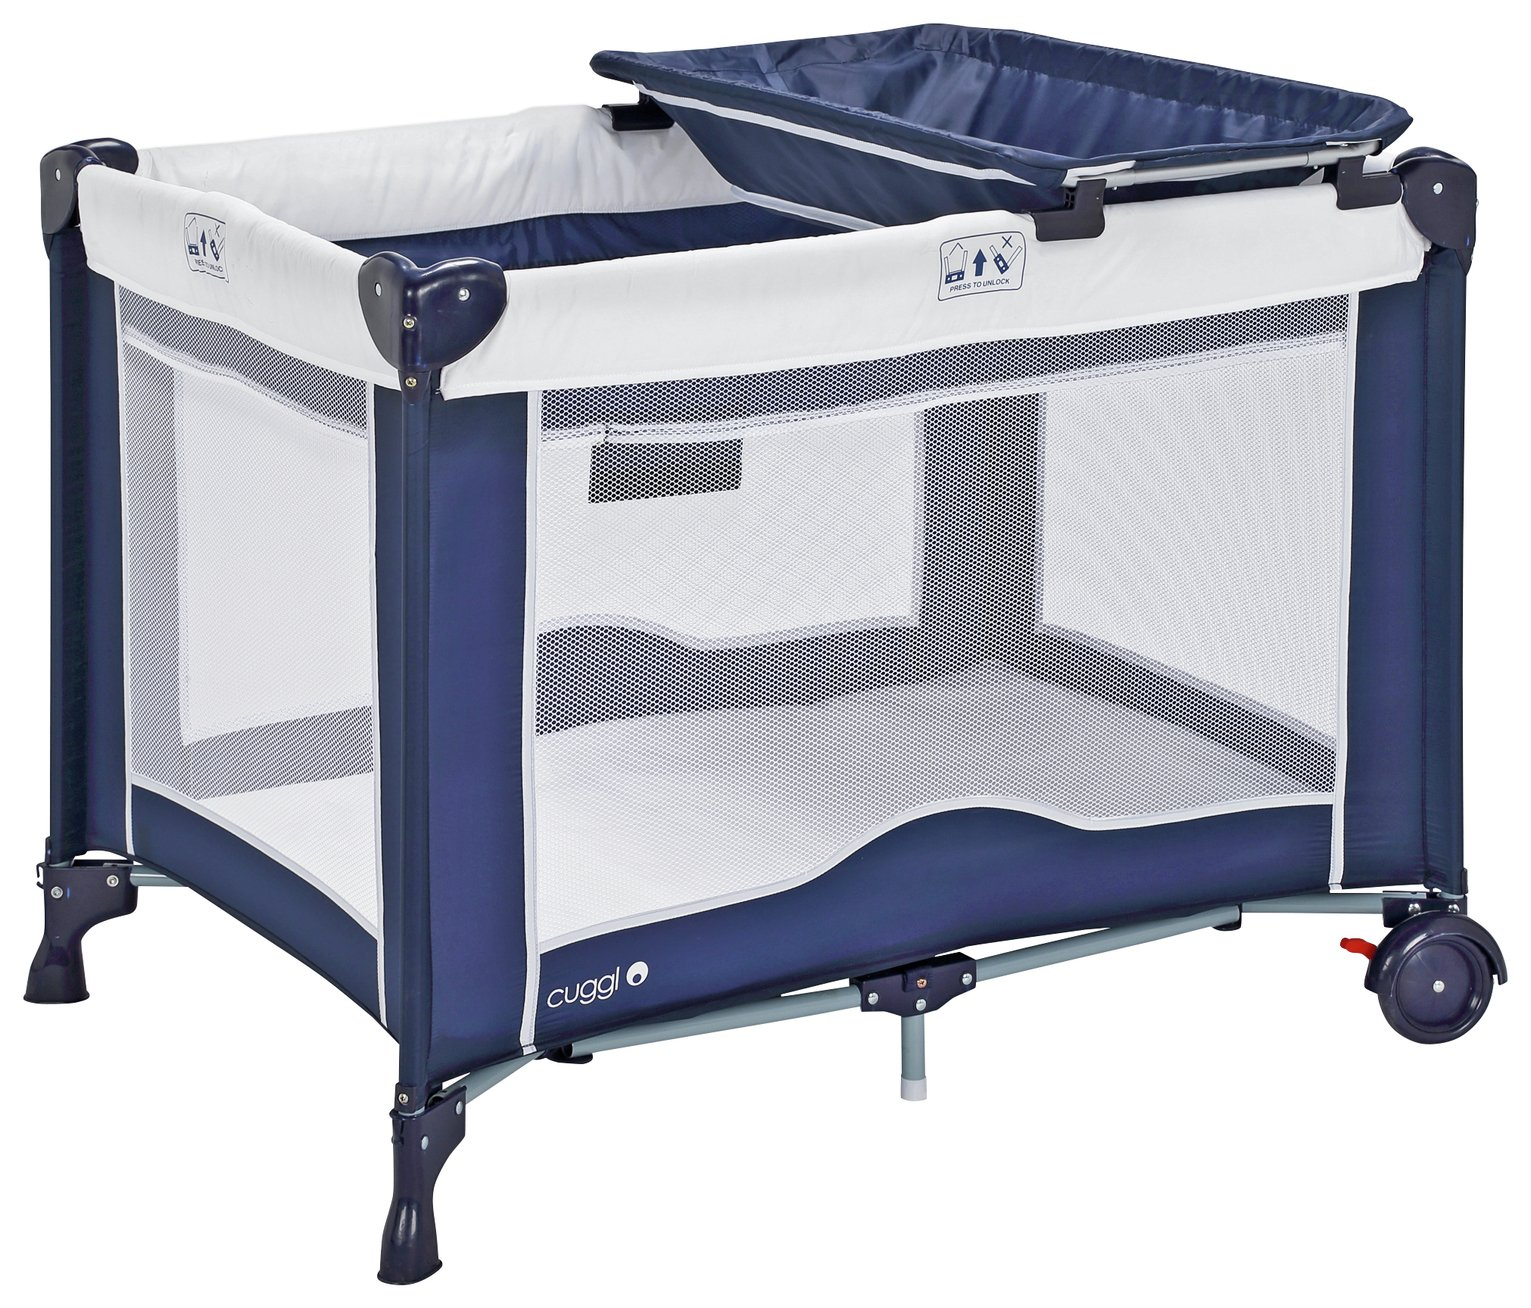 Image of Cuggl Deluxe Travel Cot and Changer Unit